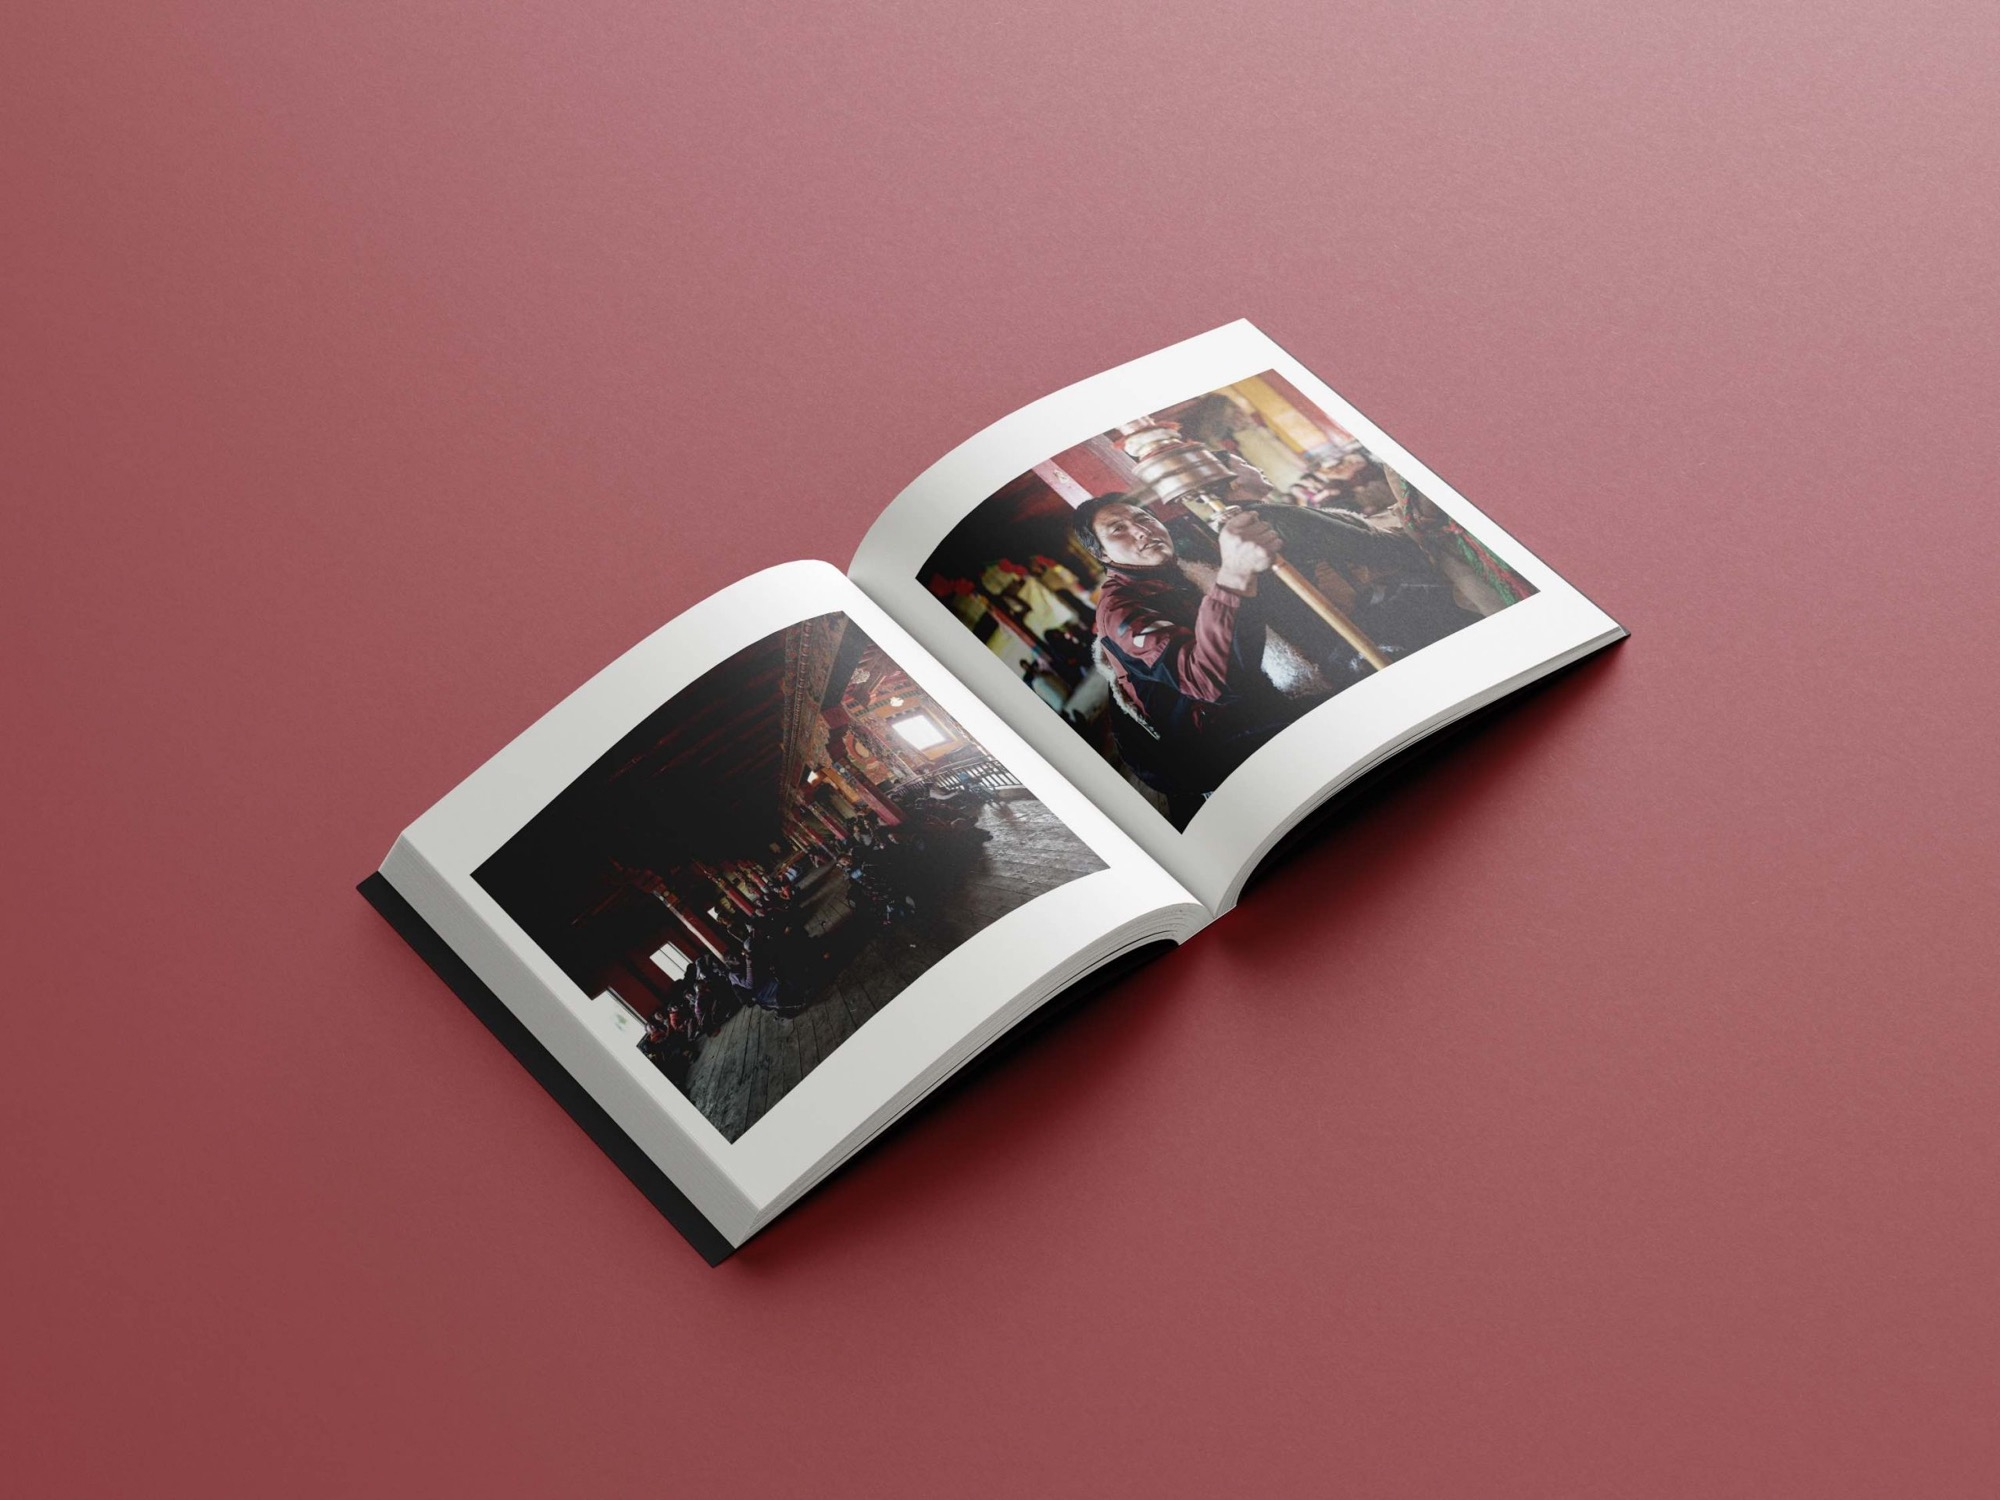 Tibet Photography Book Sichuan Documentary Singapore Coco Creative Studio 1-6